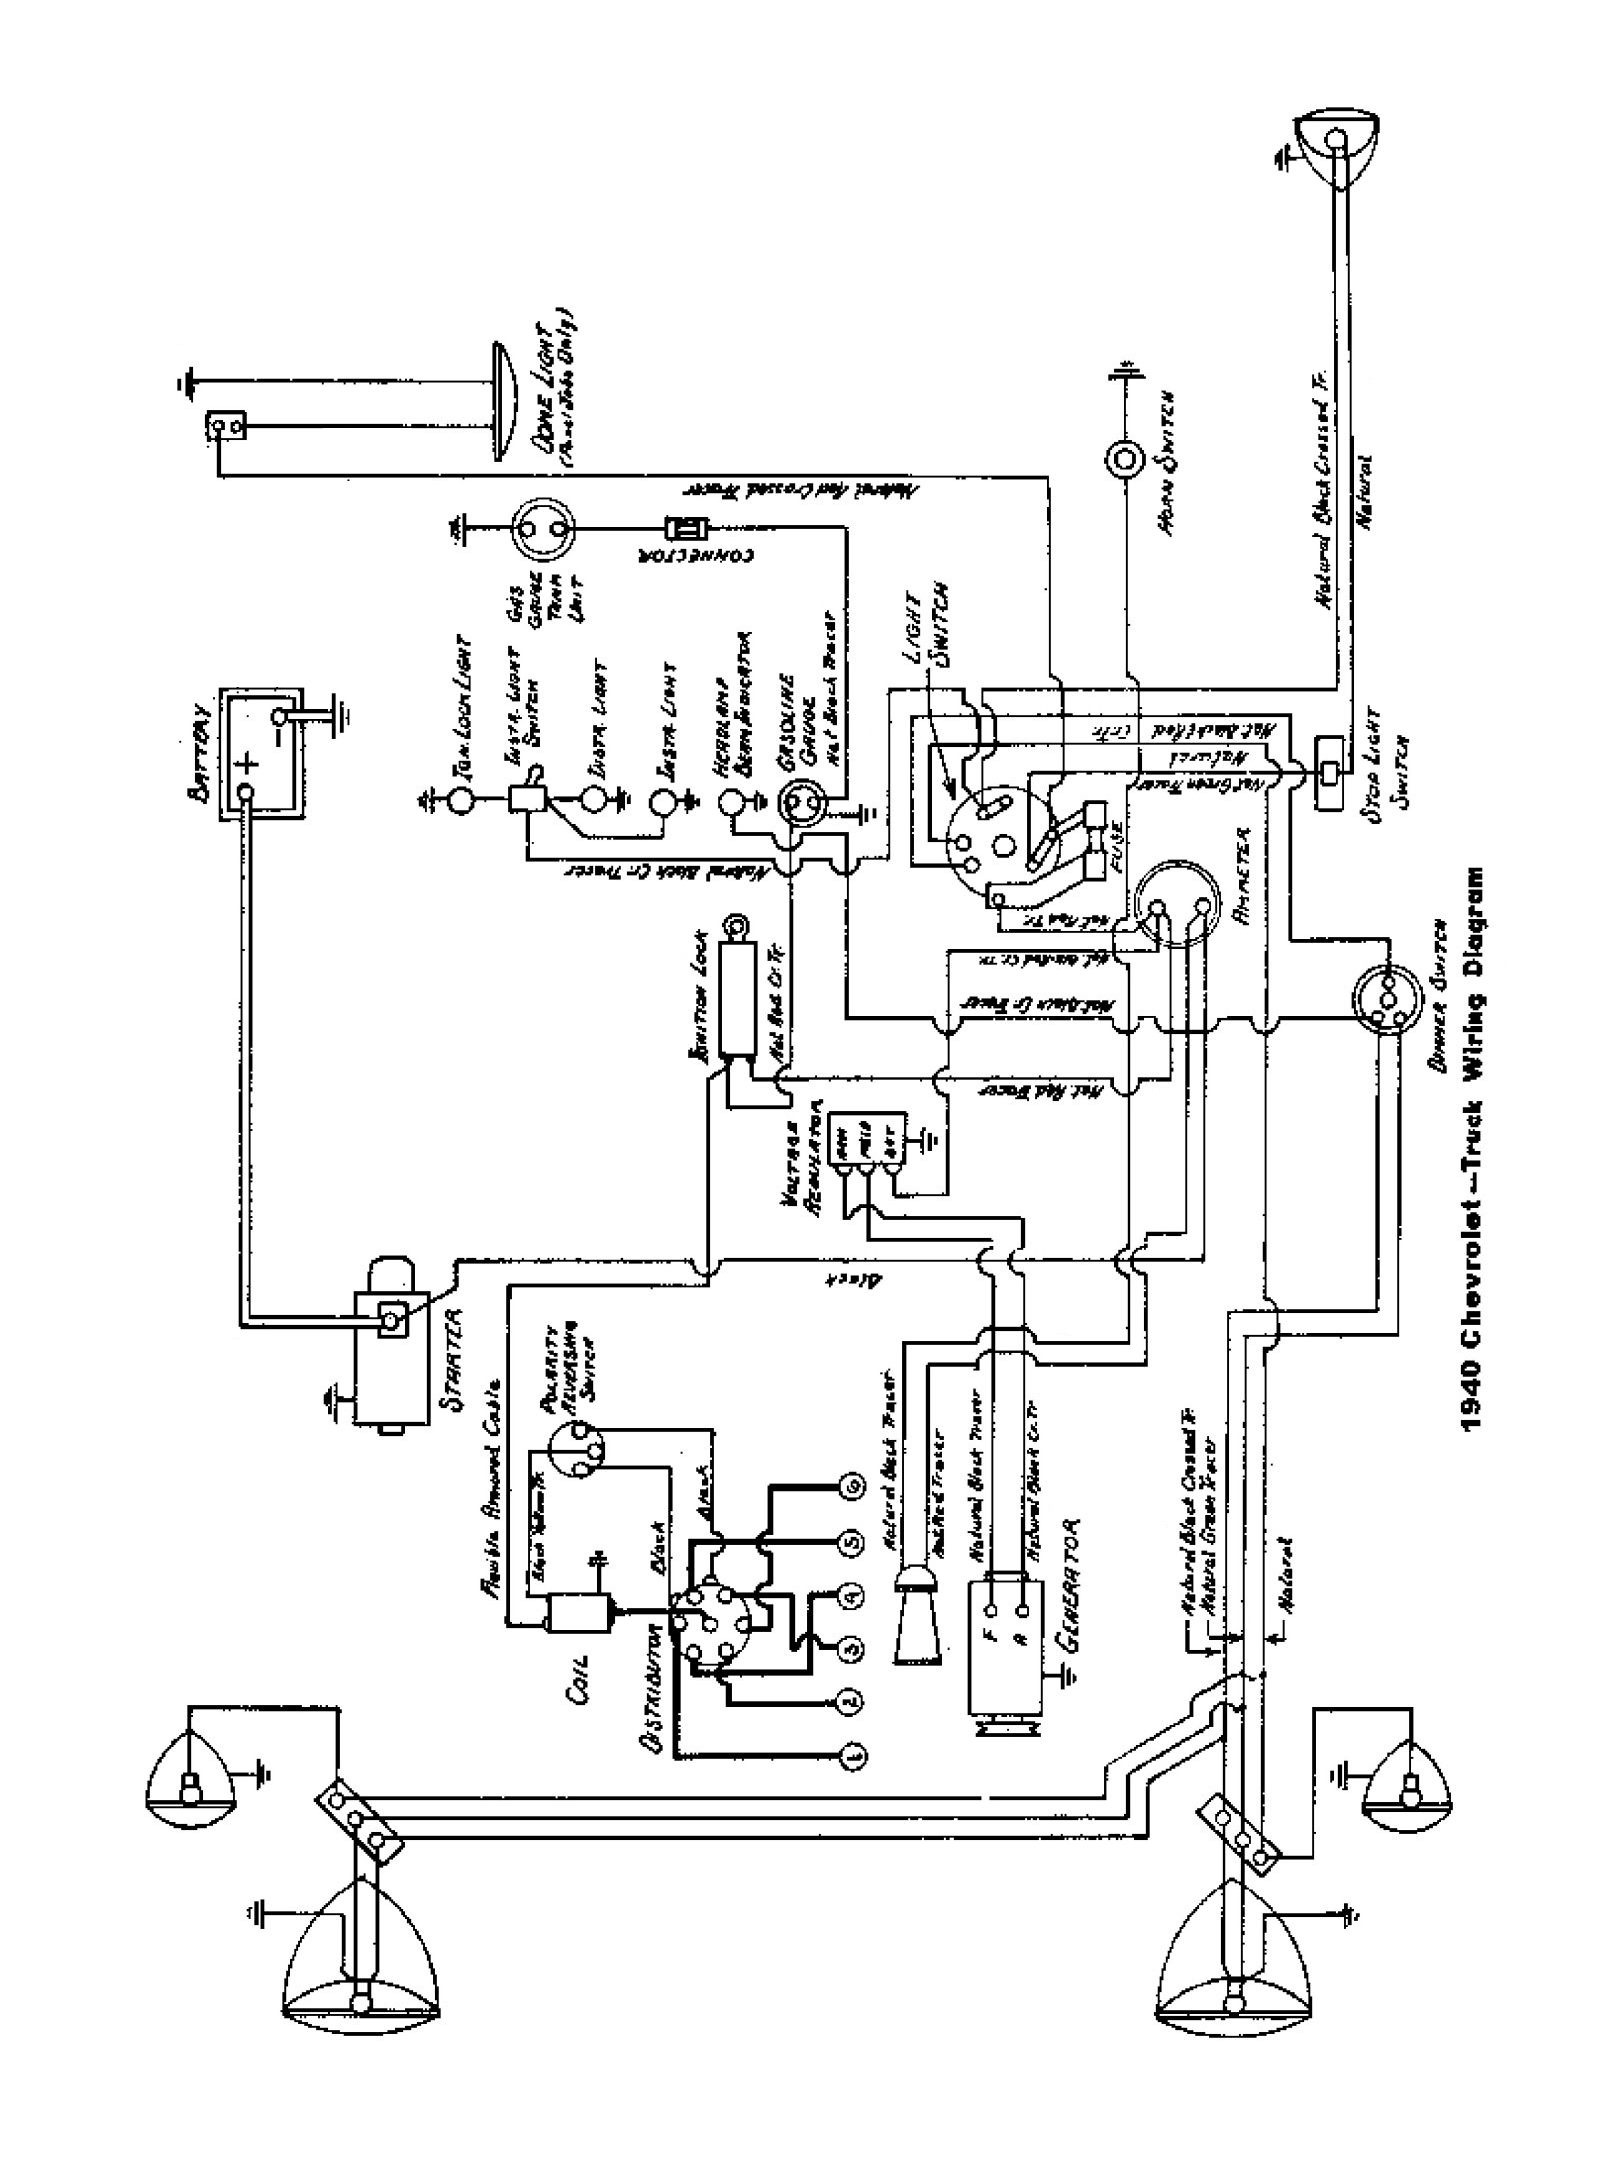 61 impala light switch diagram schematic wiring diagram  62 impala wiring diagrams light switch #15